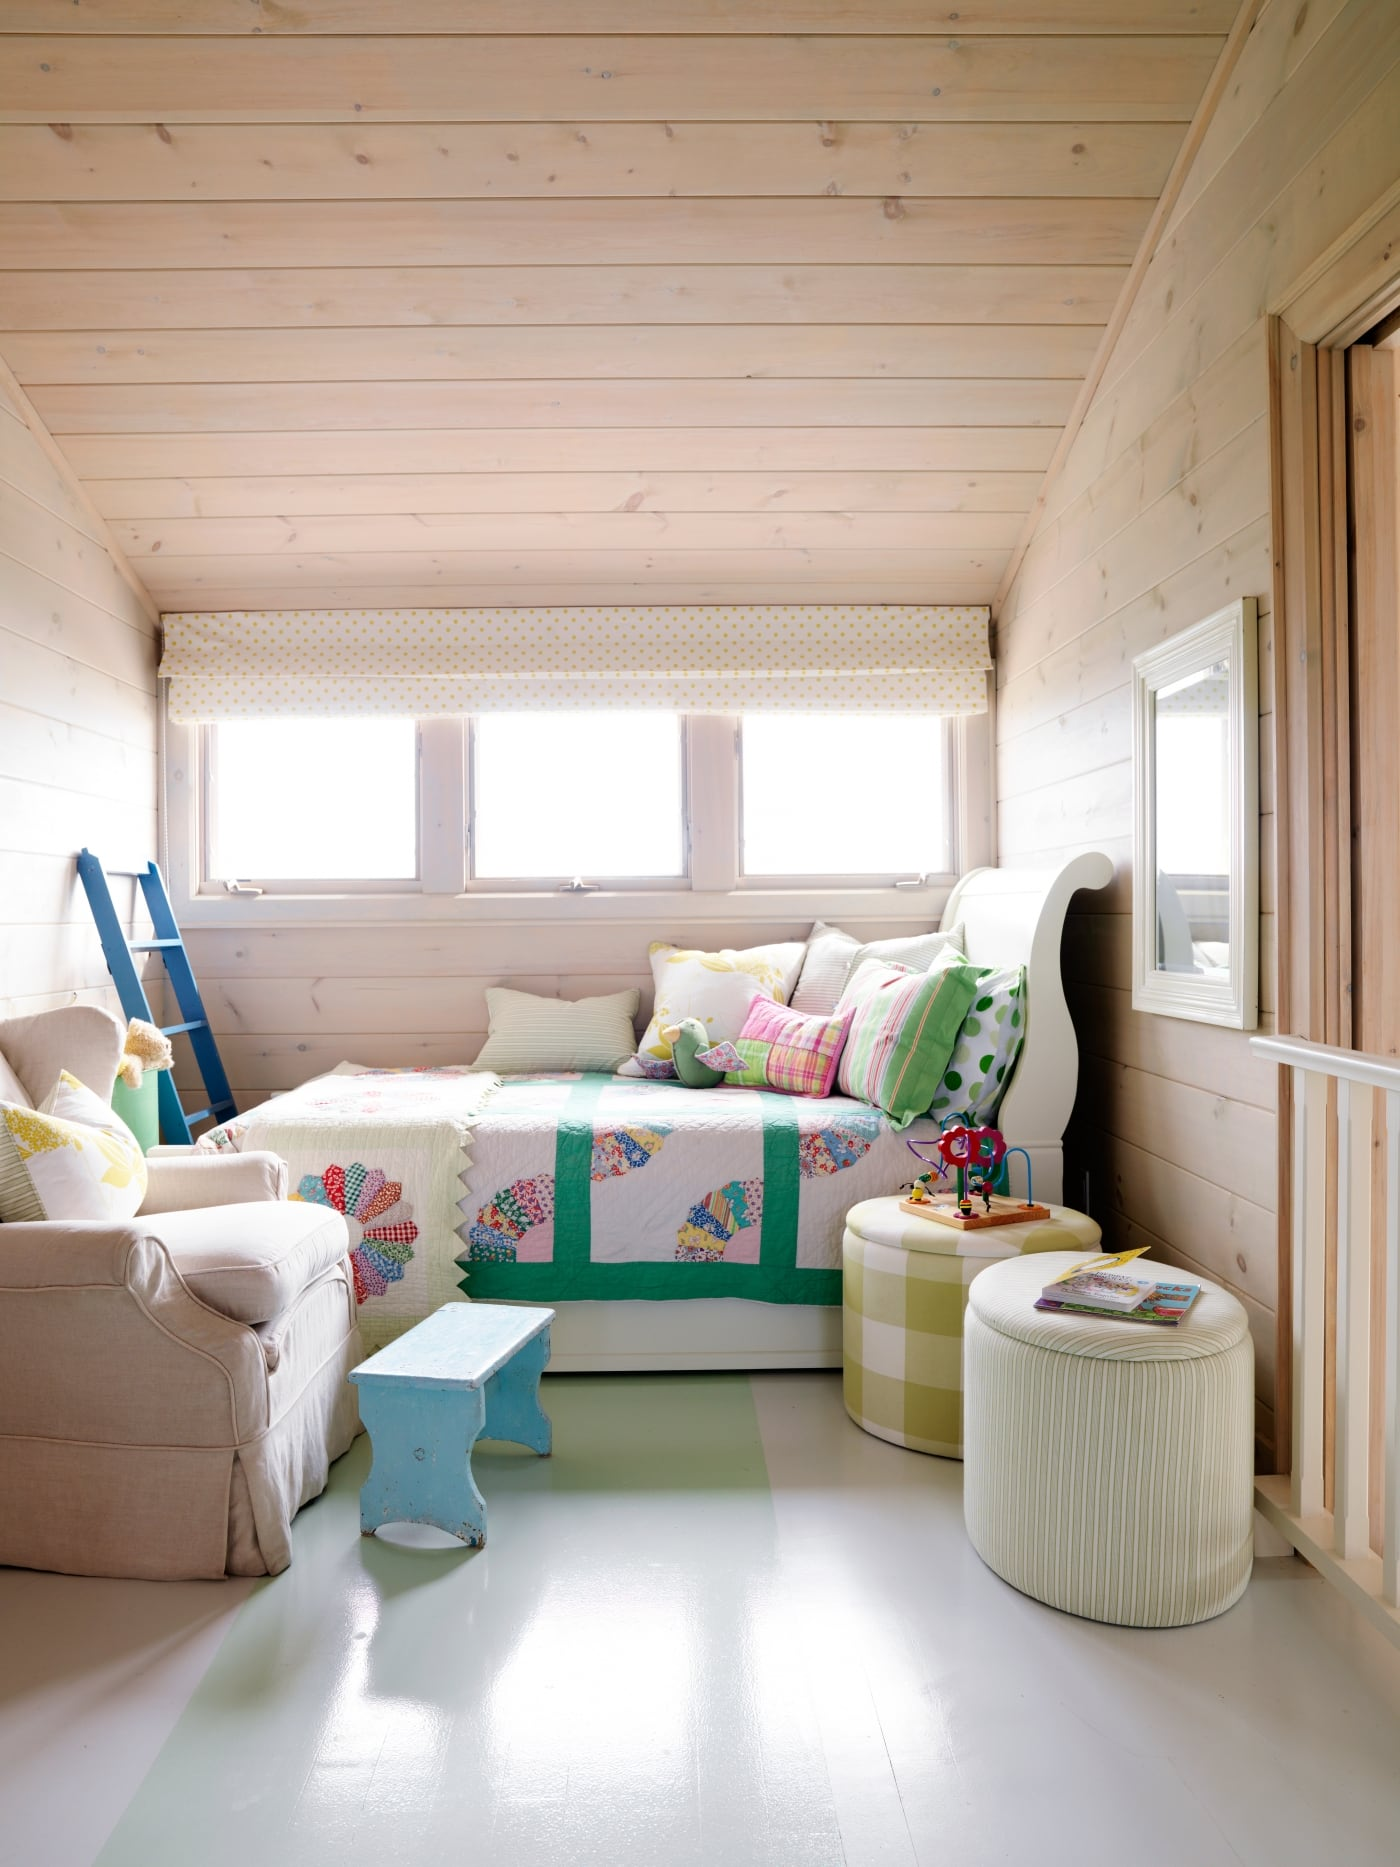 Single bed lined up on wall with windows over top. #SarahRichardson #cottagestyle #knottypine